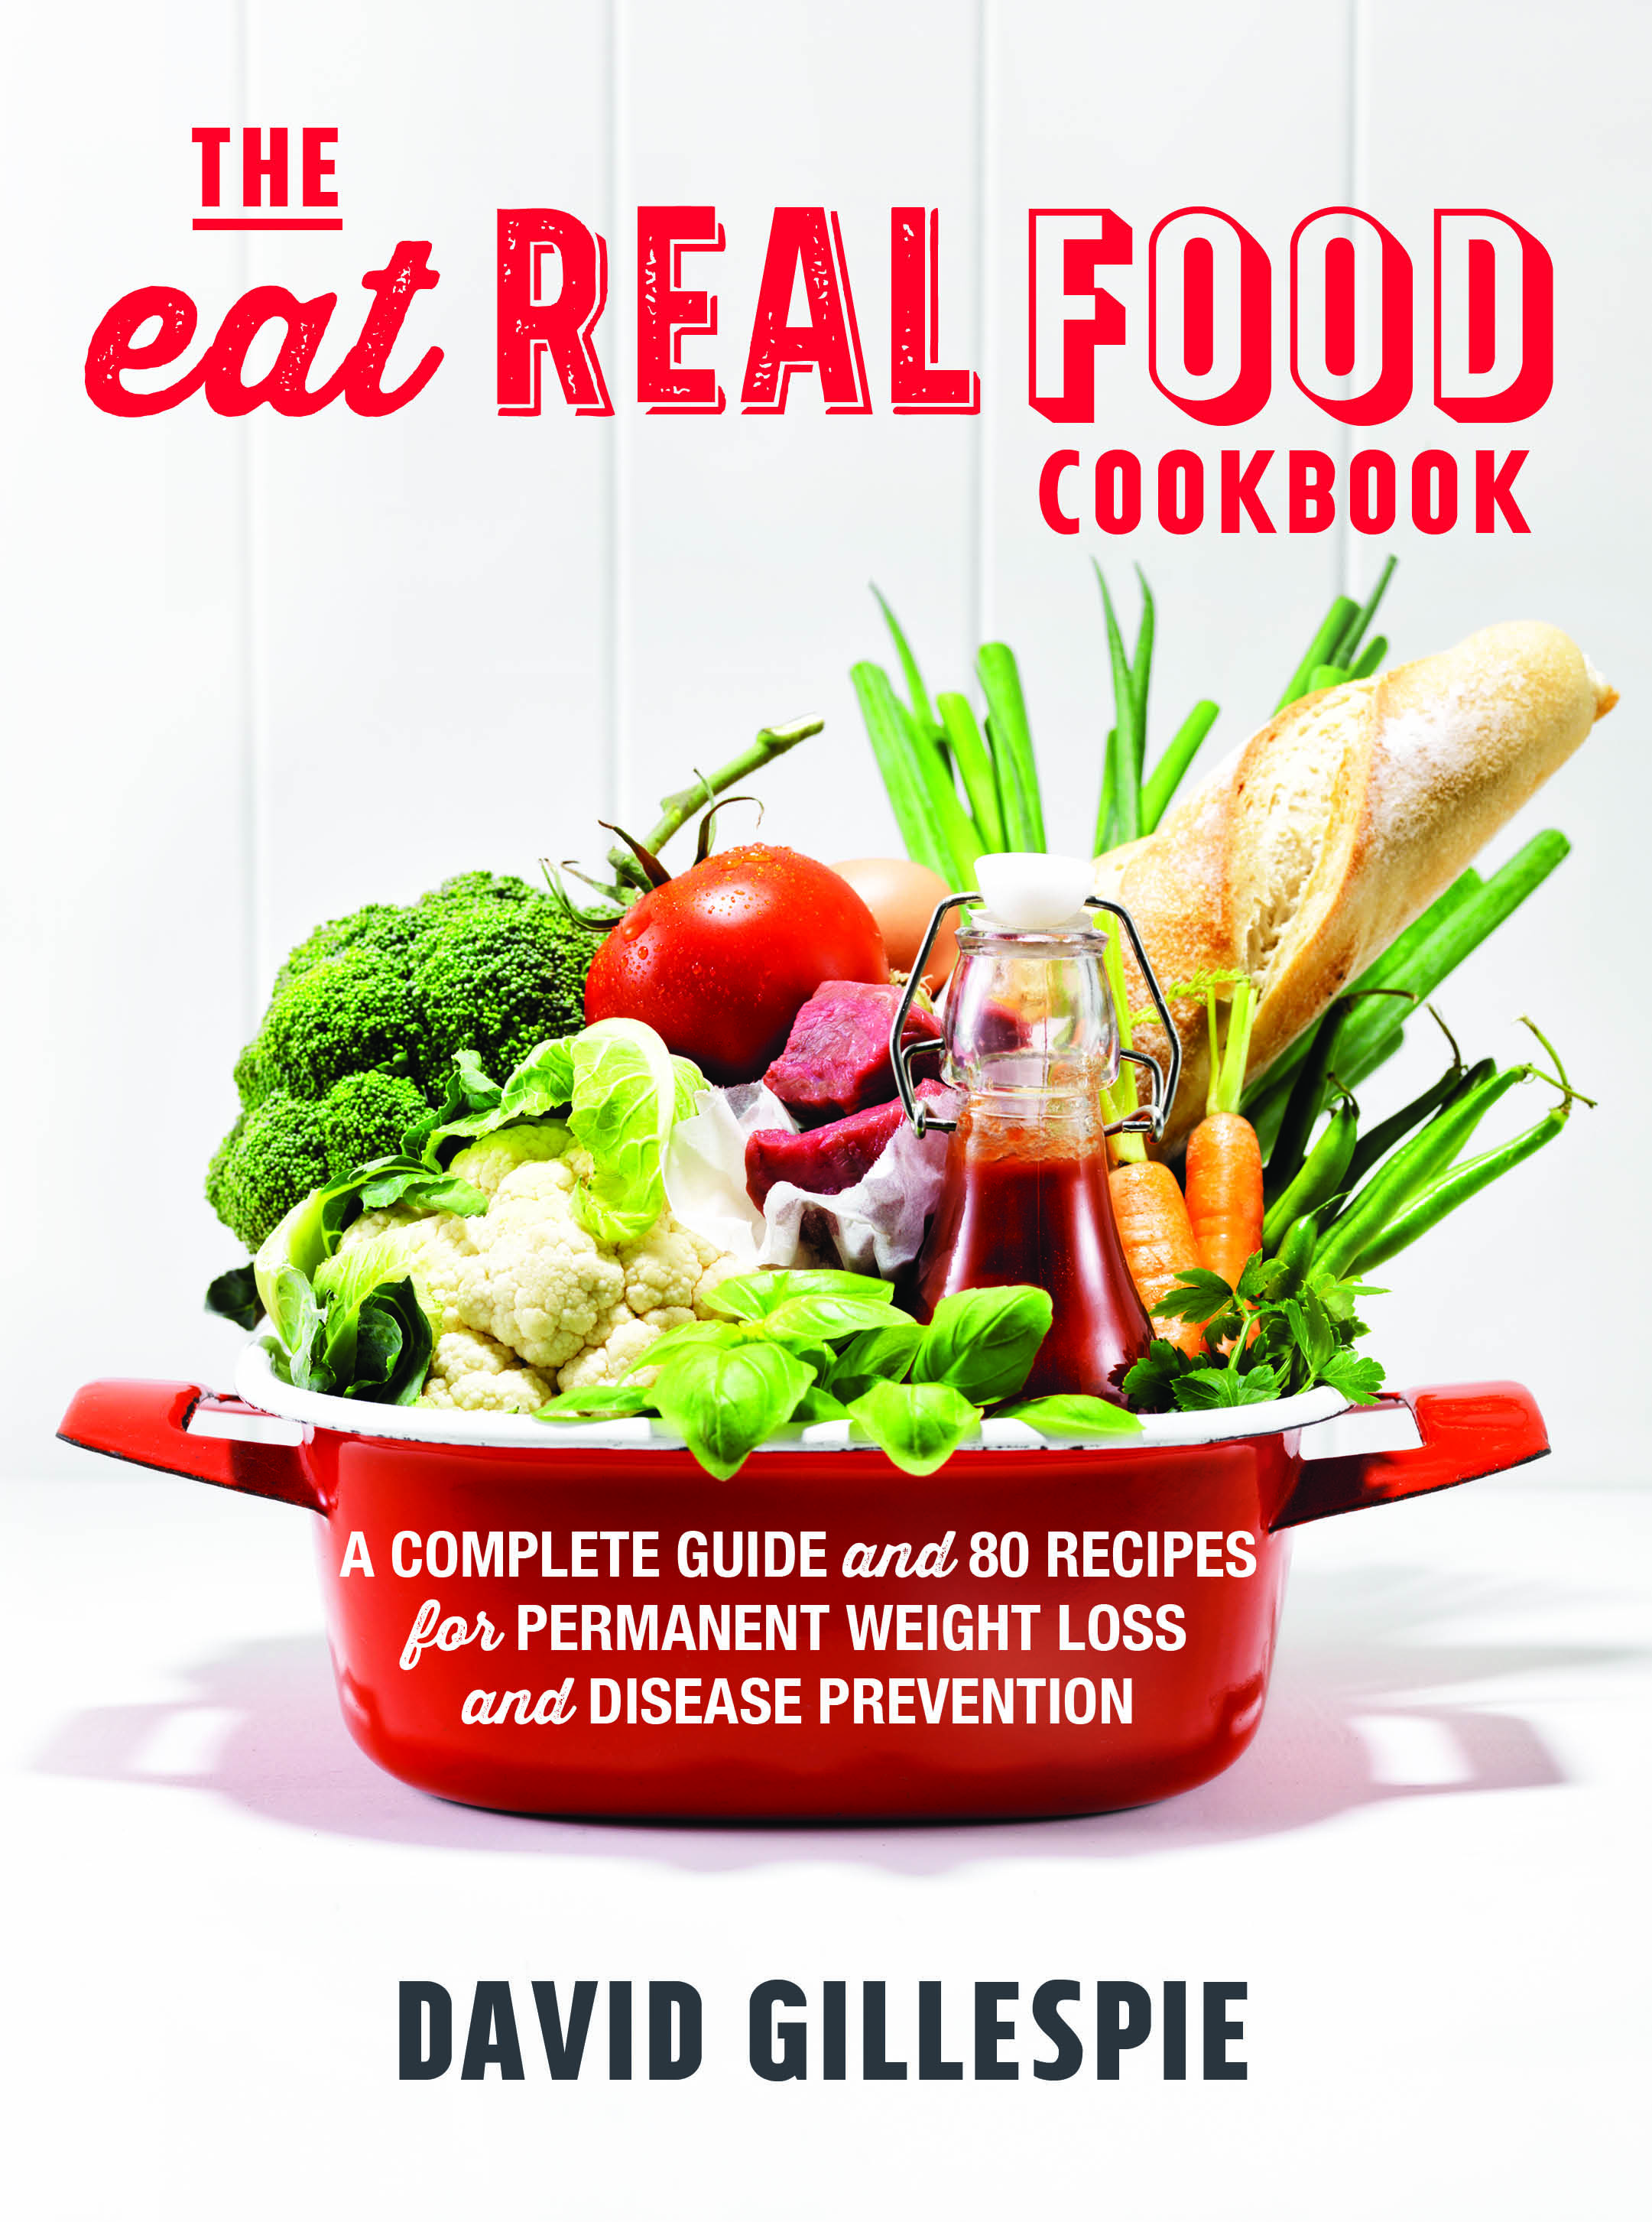 The Eat Real Food Cookbook by David Gillespie, ISBN: 9781743540183